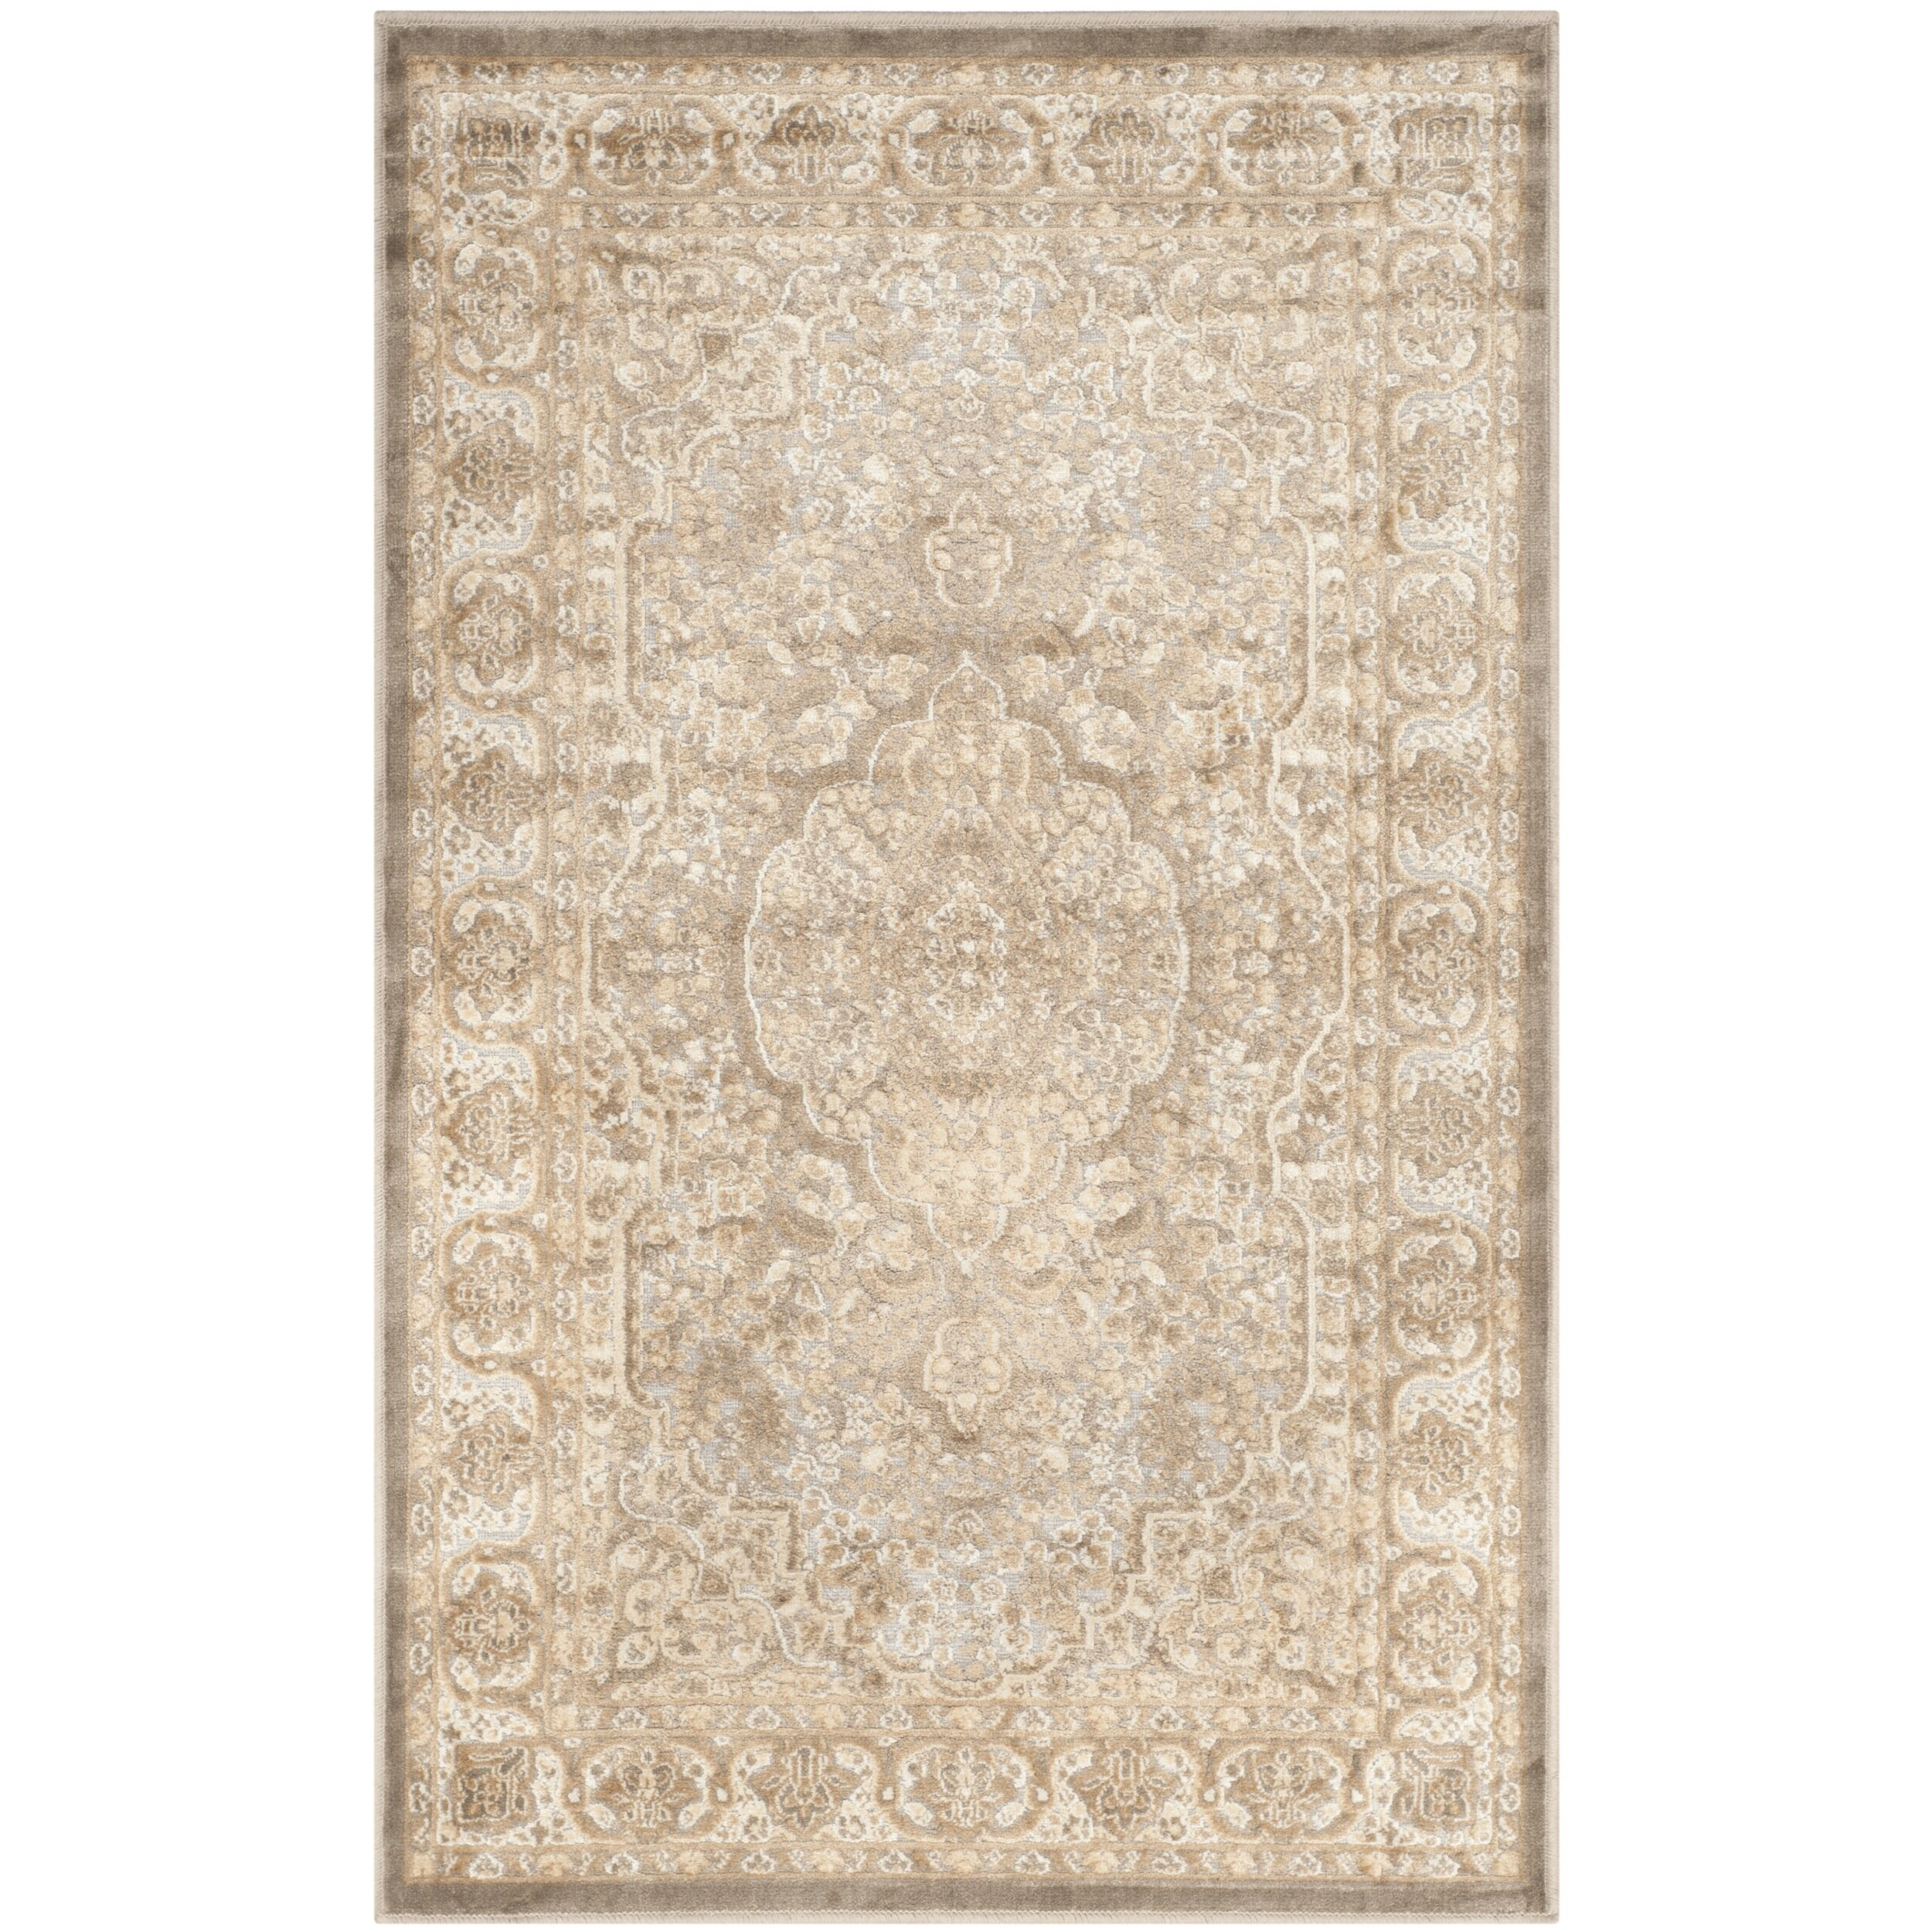 Patrick Mouse Silver Area Rug